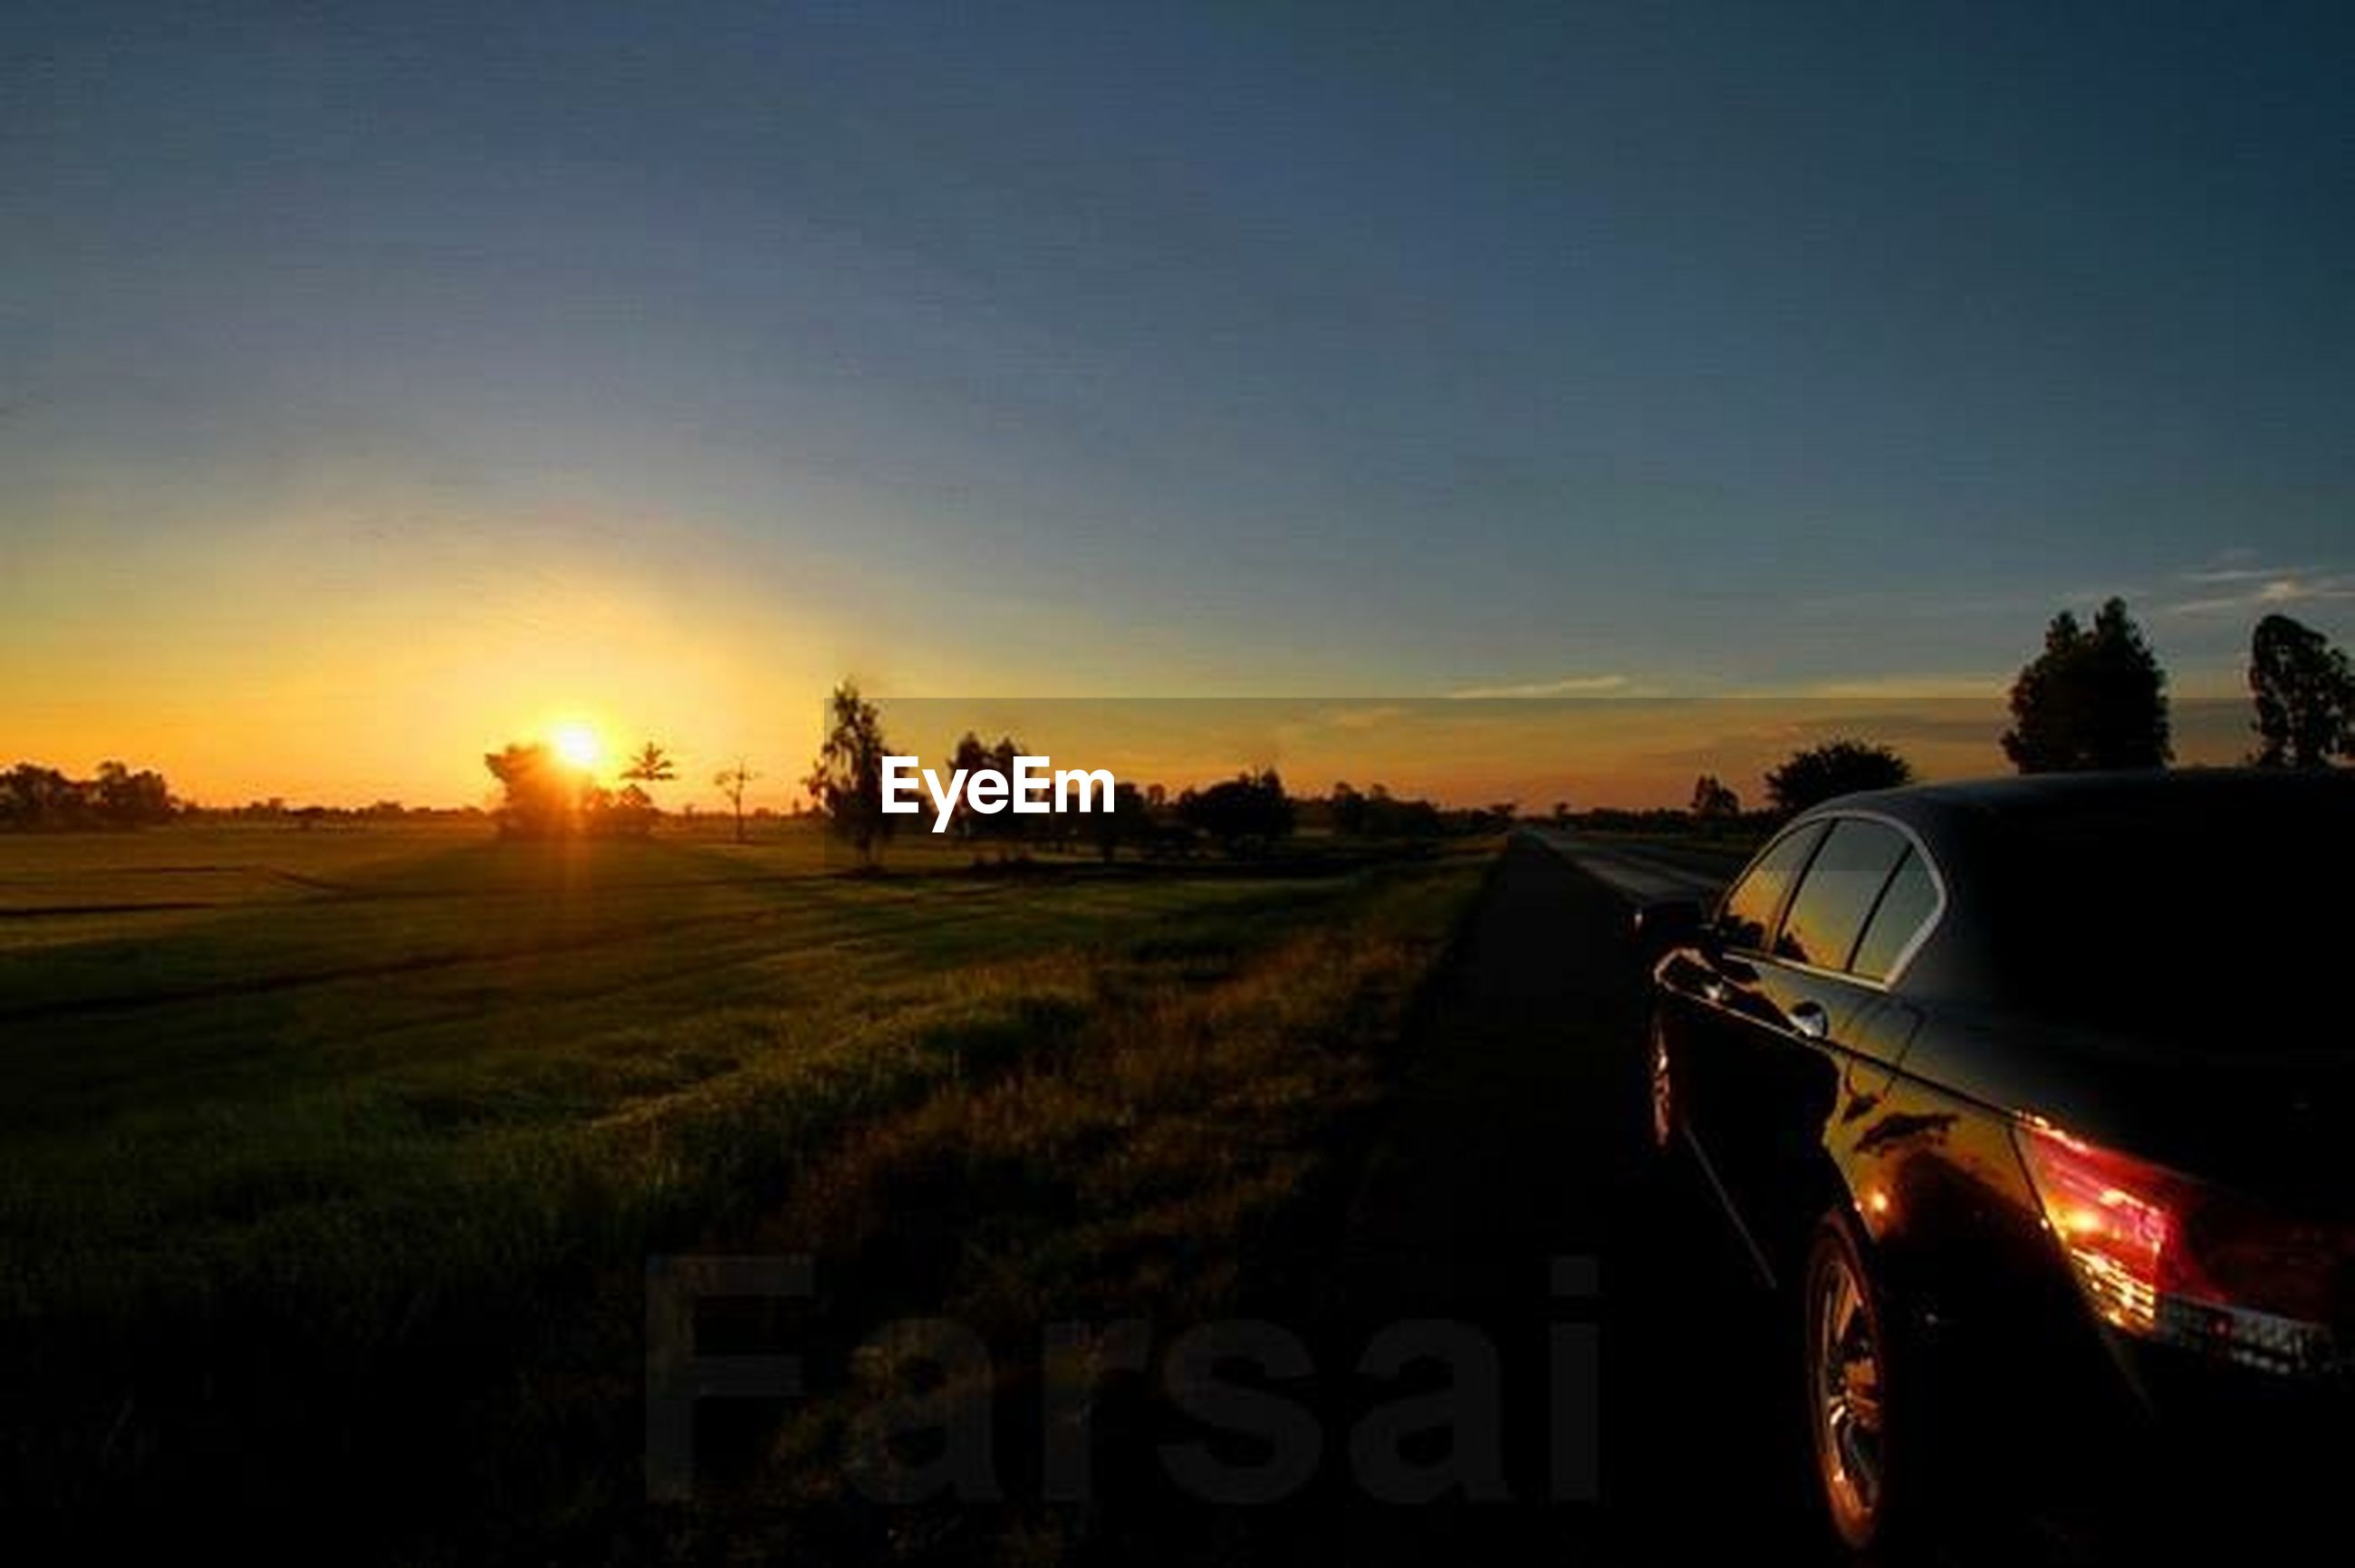 sunset, transportation, land vehicle, landscape, sky, car, mode of transport, silhouette, copy space, orange color, scenics, tree, sun, tranquil scene, field, road, beauty in nature, clear sky, tranquility, nature